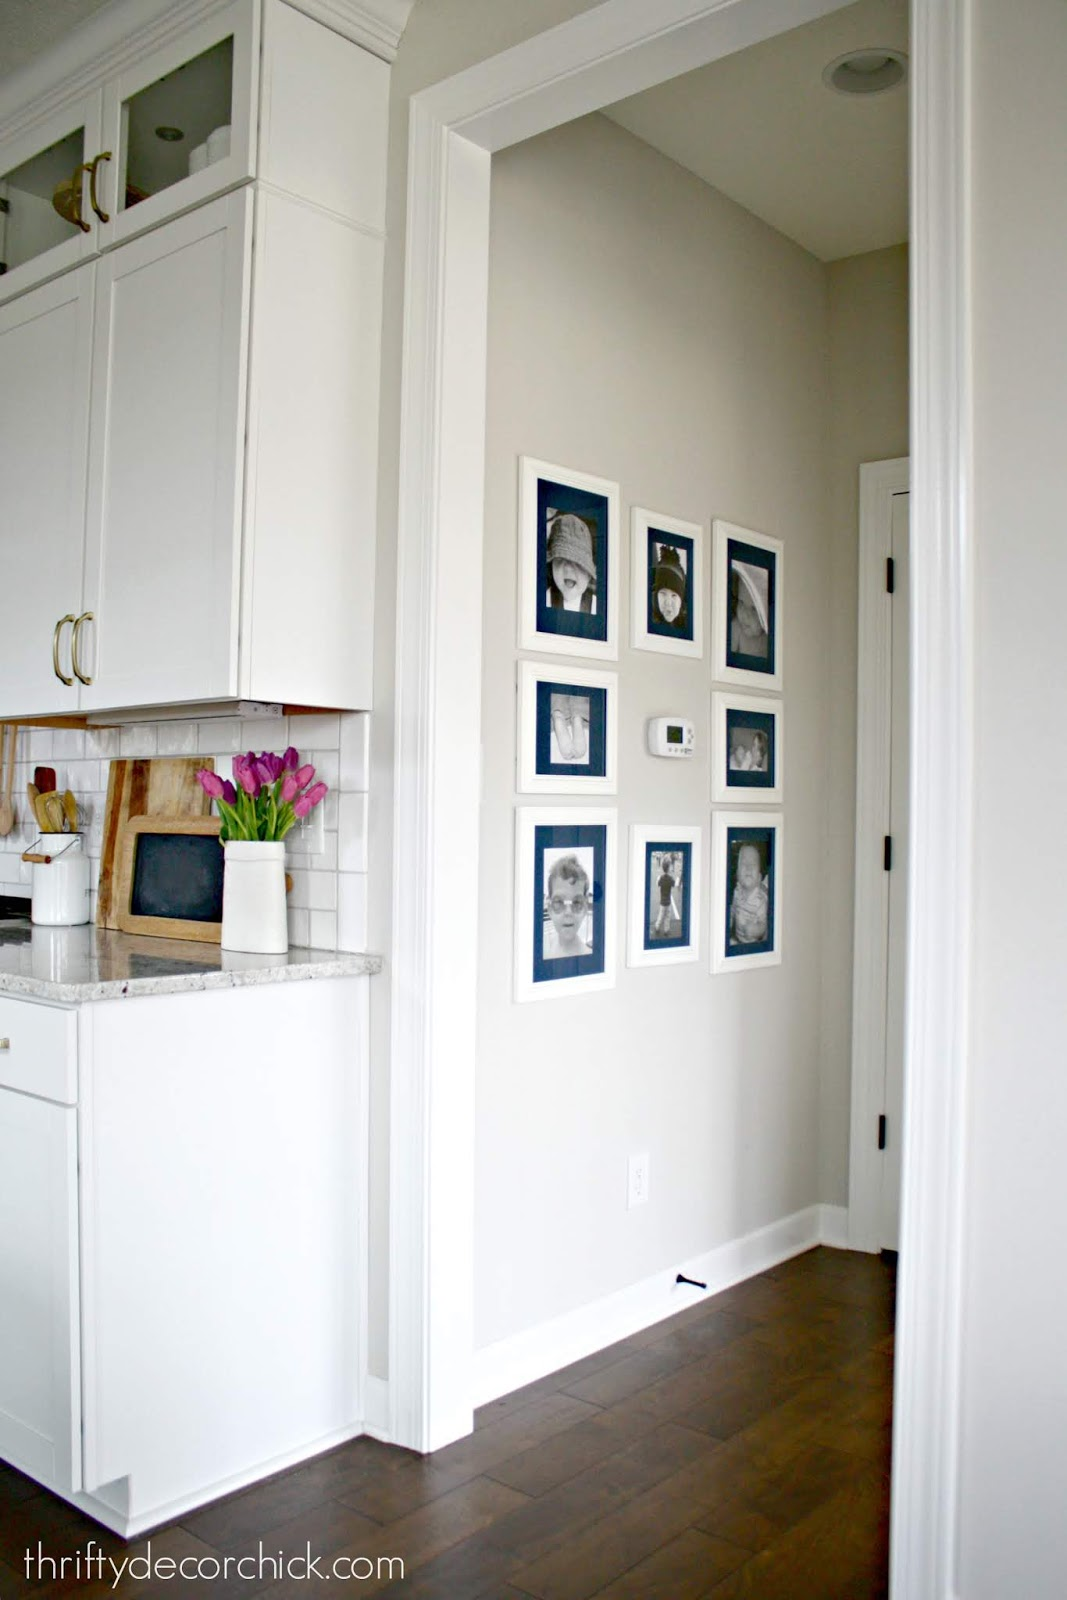 Gallery wall around thermostat